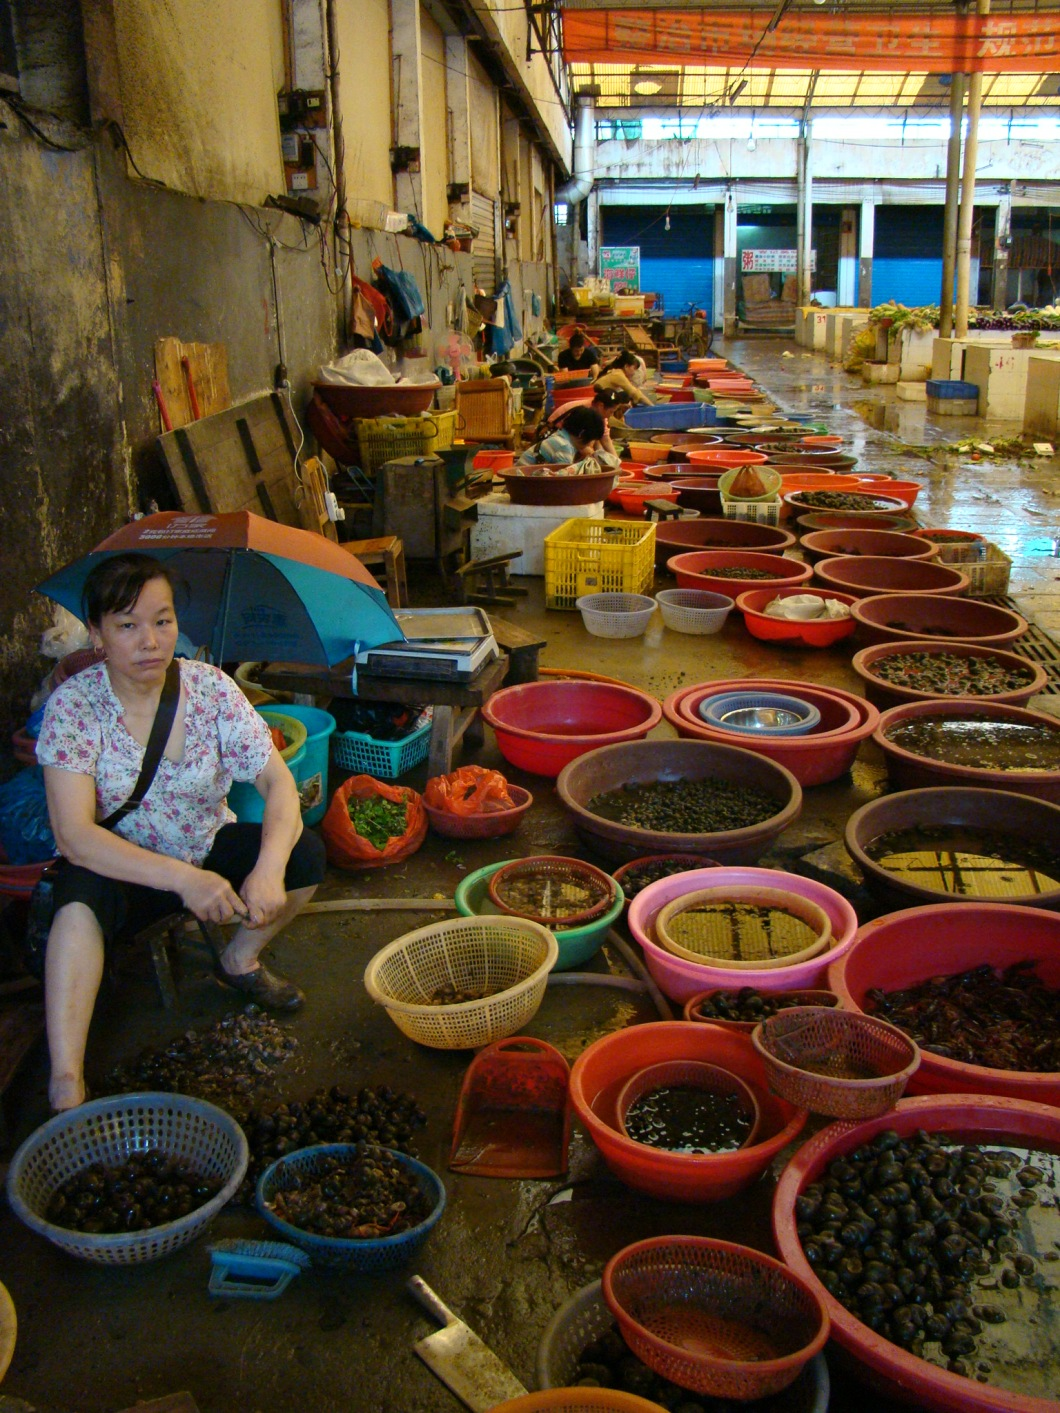 Rows of buckets filled with live produce